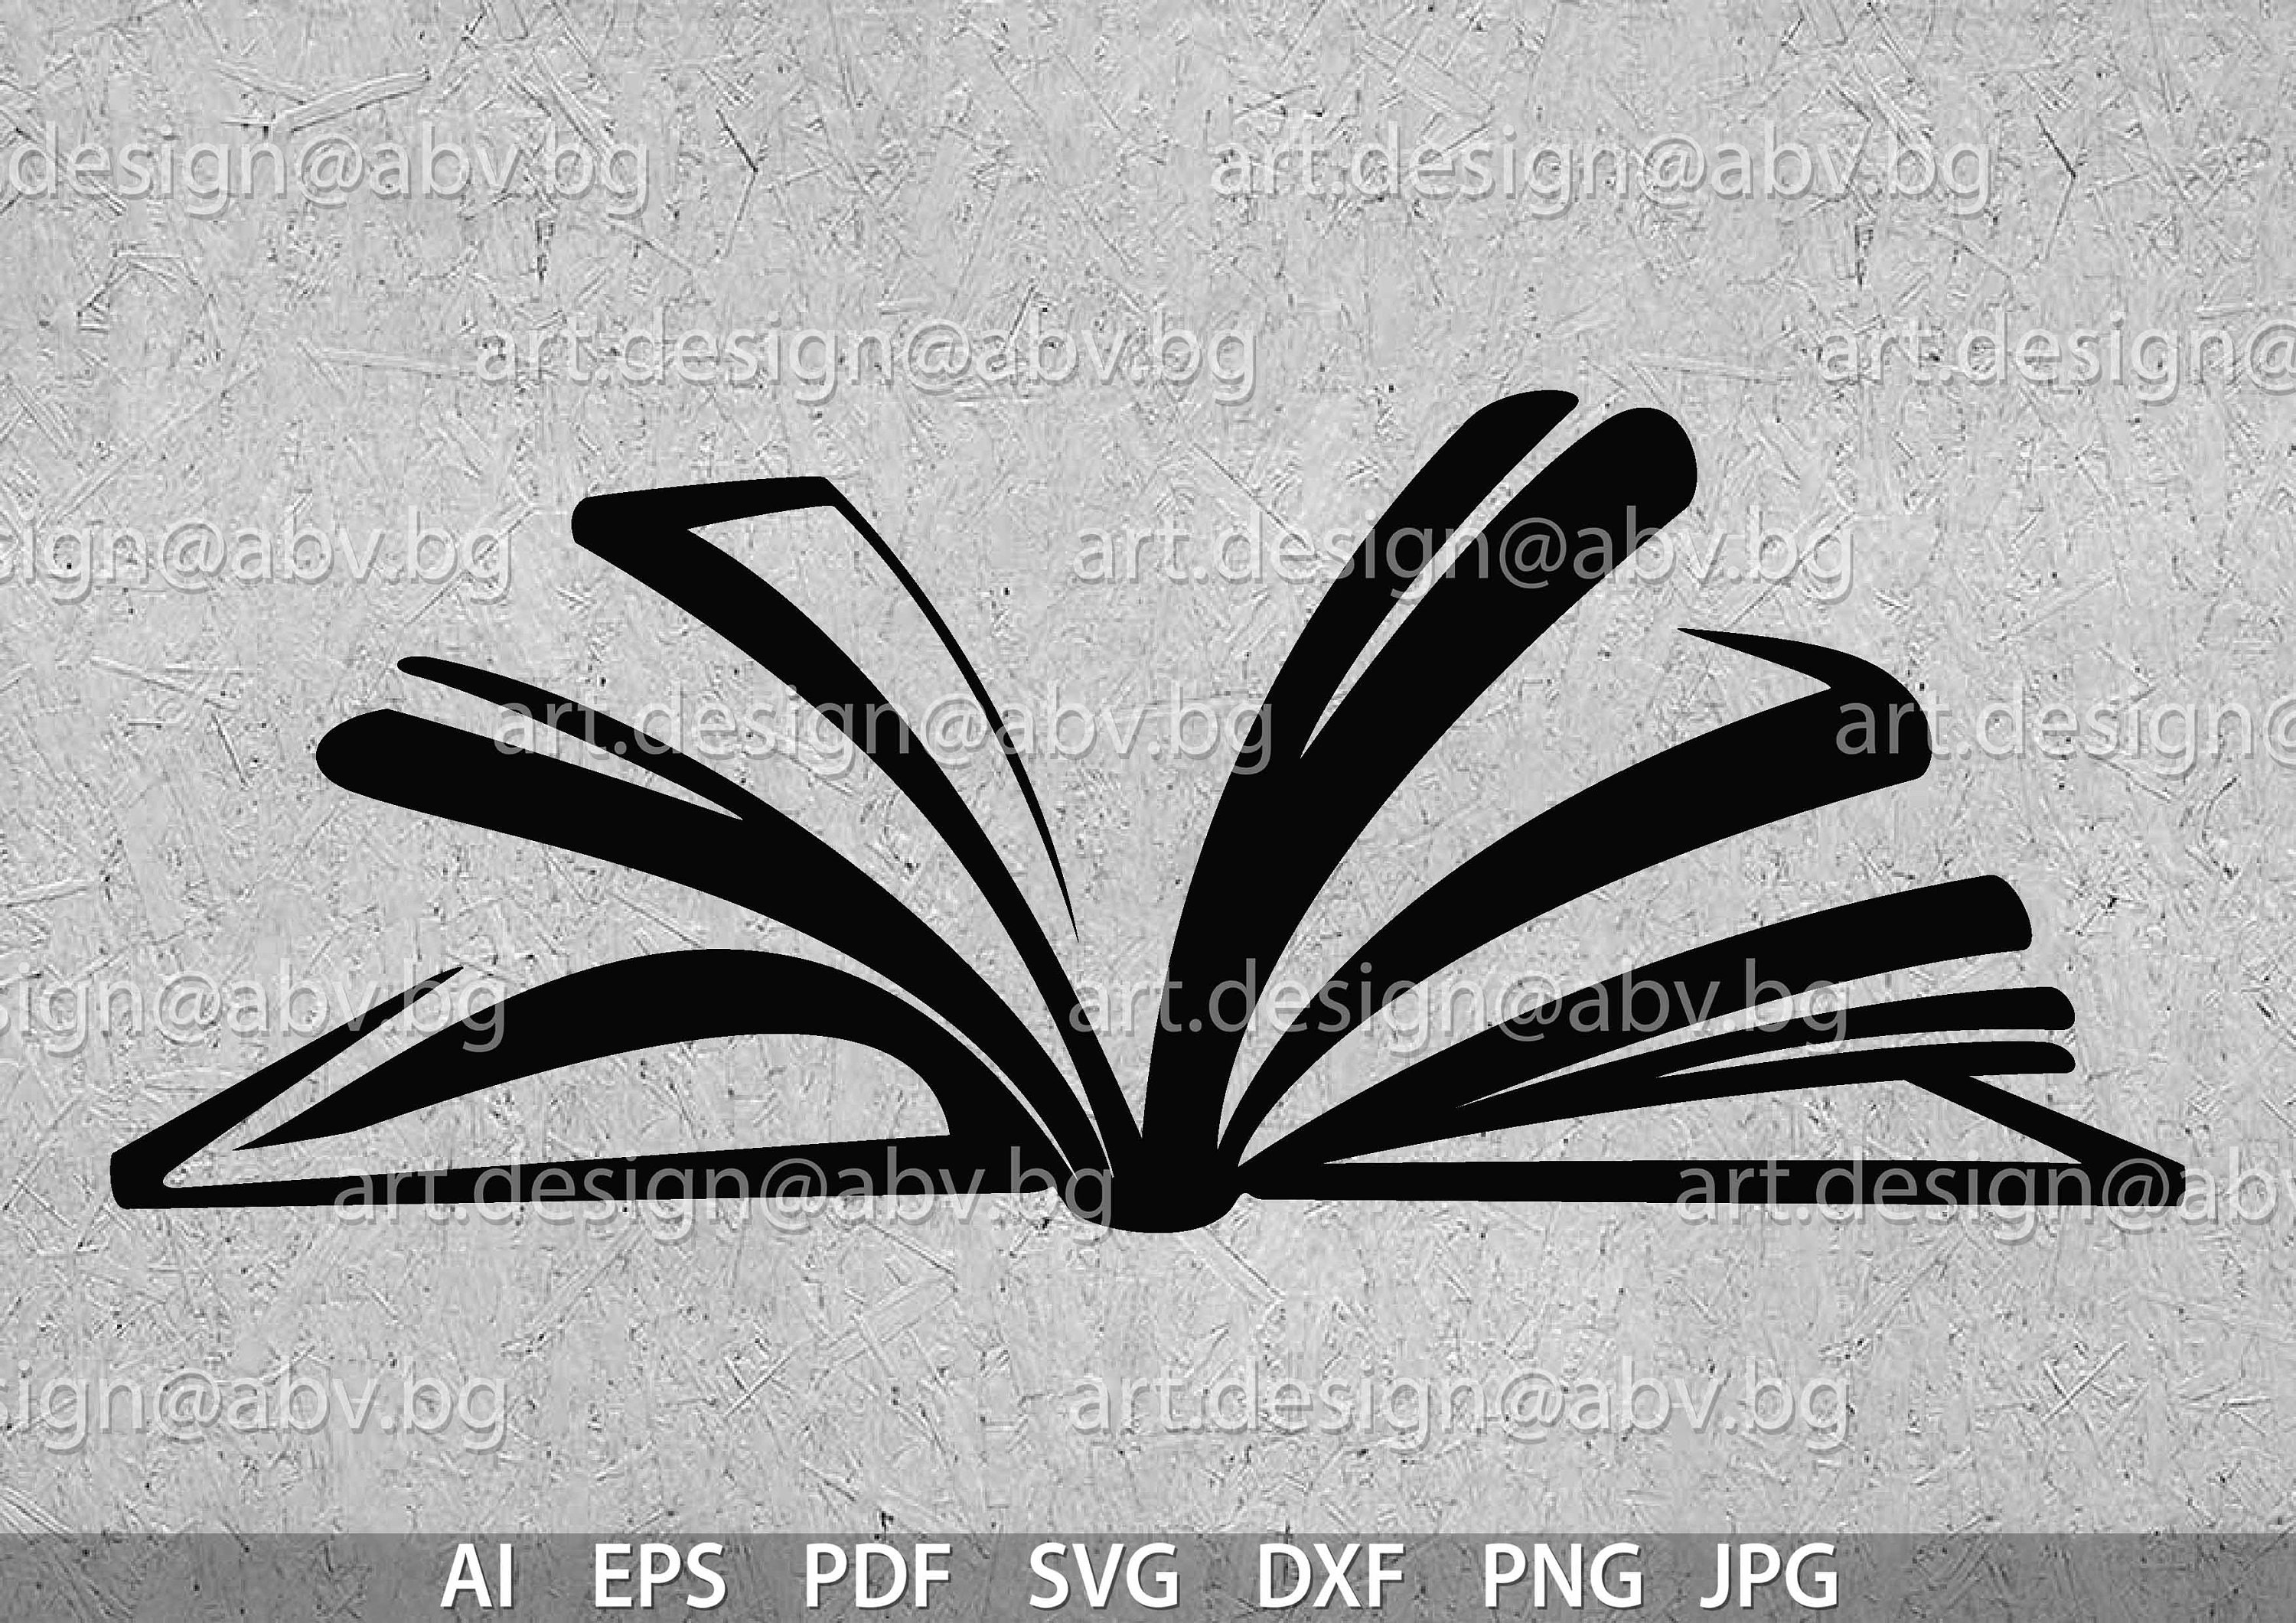 vector open book ai eps pdf svg dxf png jpg download etsy